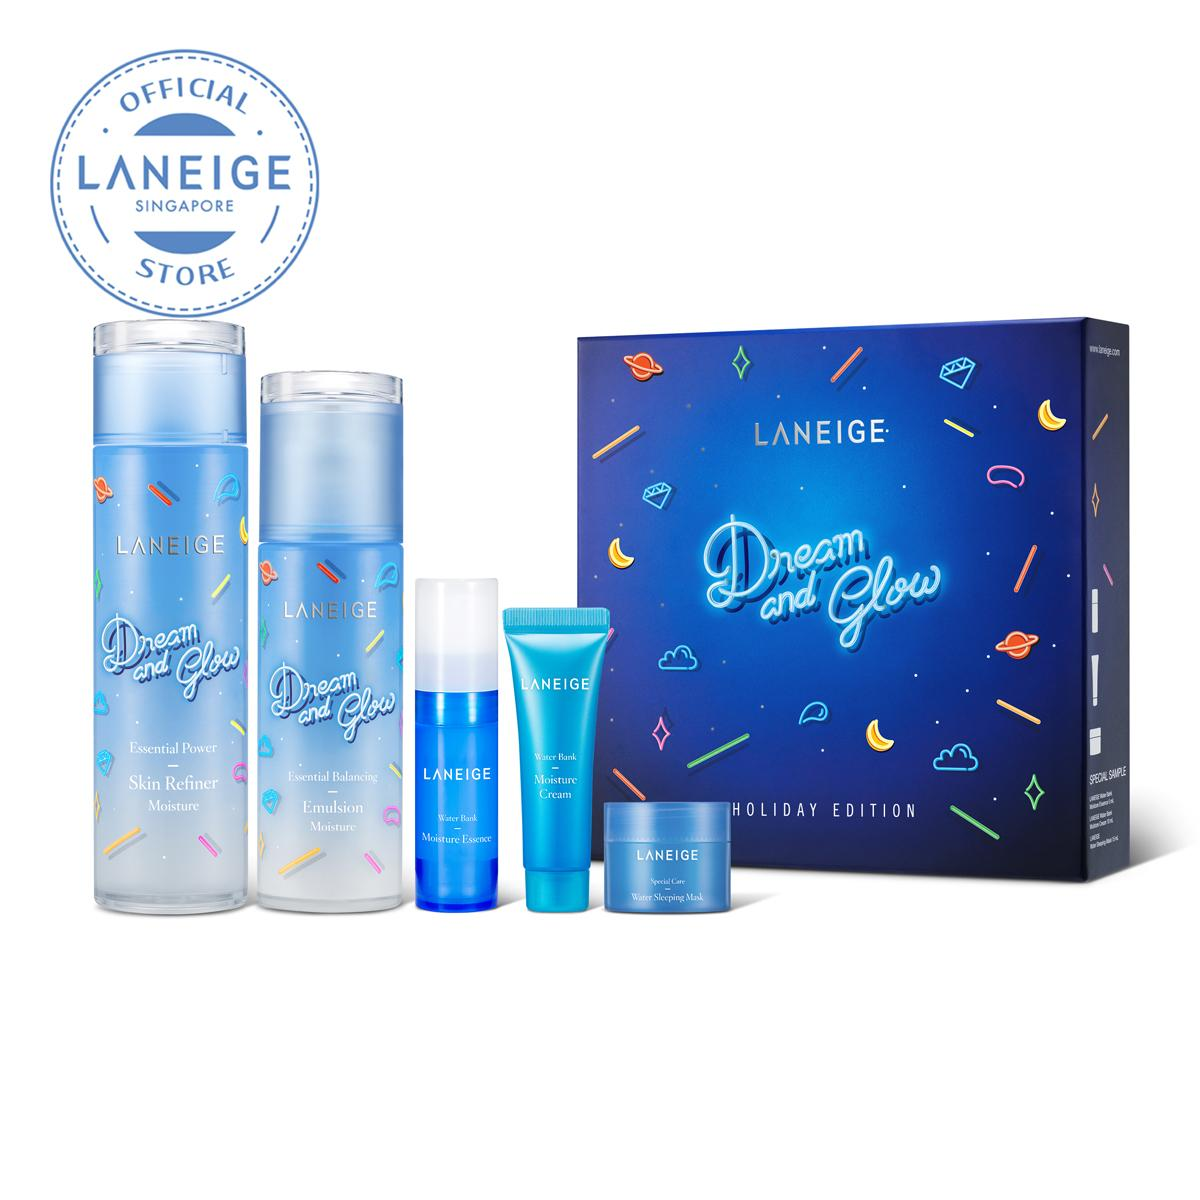 Buy Laneige Gifts Online Value Sets White Dew Ampoule Essence Set Holiday 2018 Basic Duo Moisture 5 Items